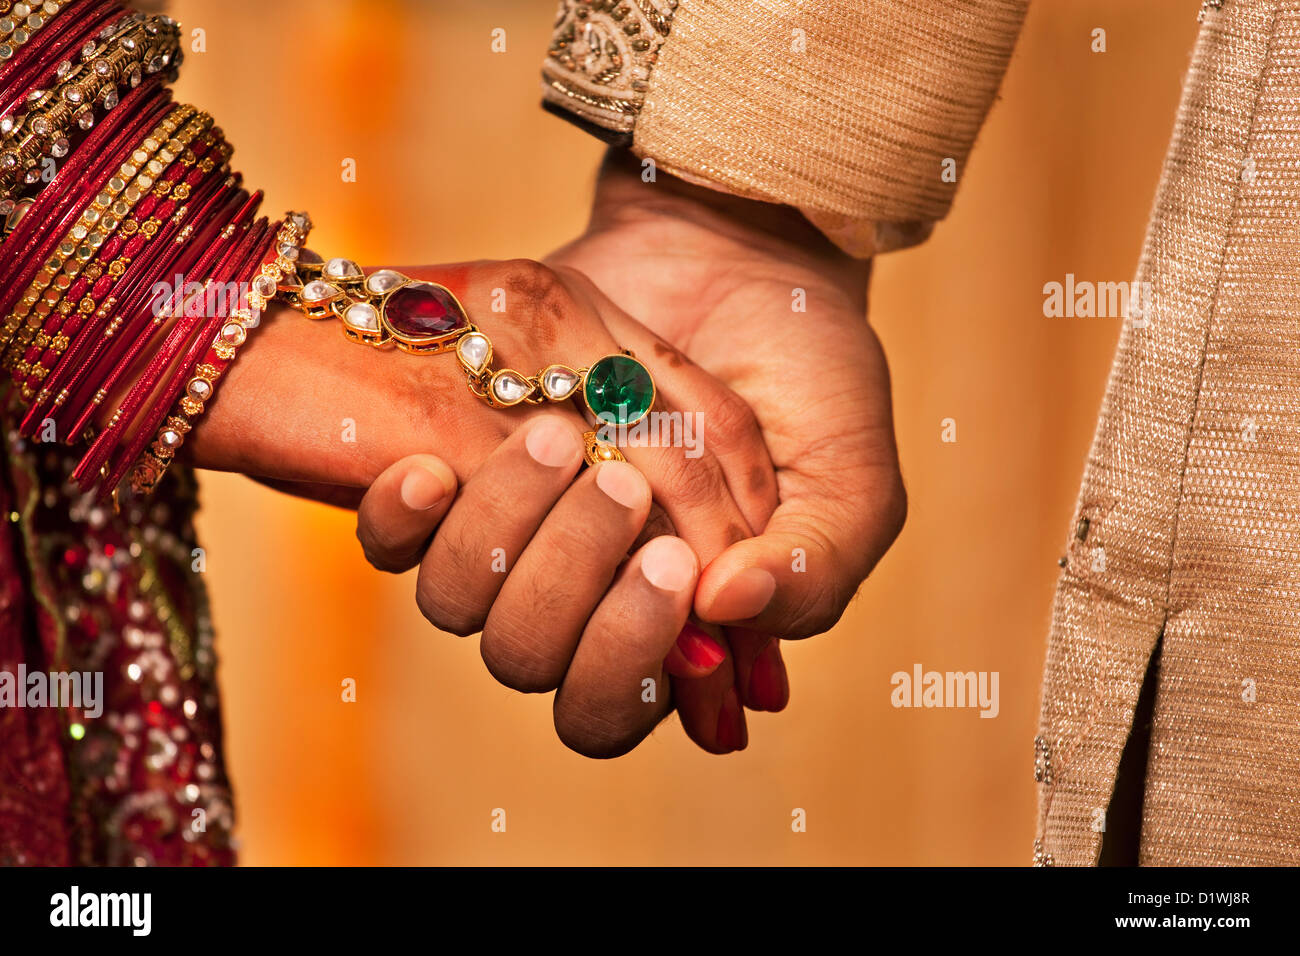 Indian Marriage Couple Hands Stock Photos & Indian Marriage Couple ...